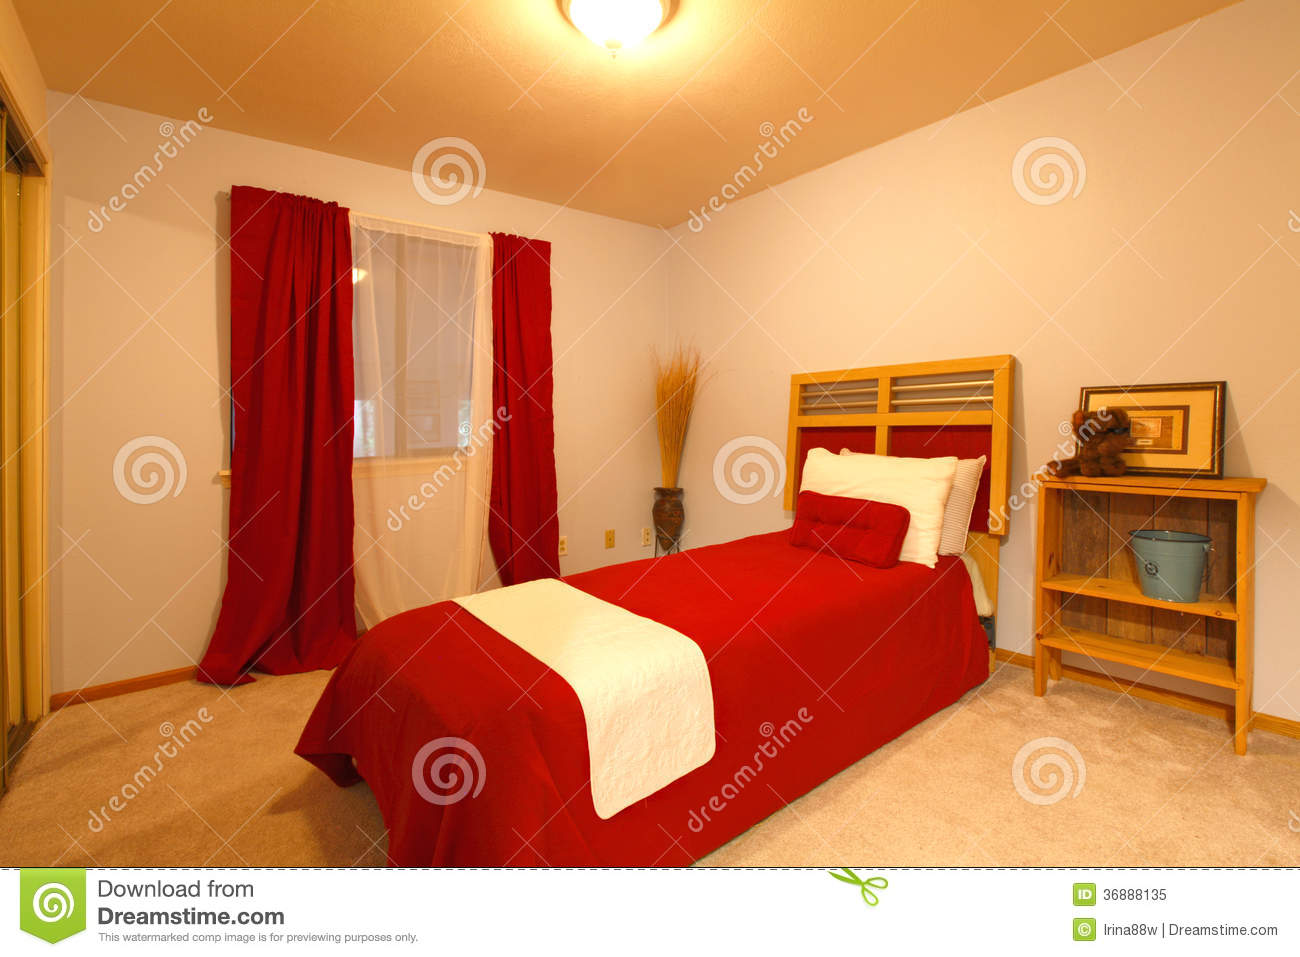 Download Piccola Camera Da Letto Calda.  Stile Country Immagine Stock - Immagine di cuscino, mobilia: 36888135